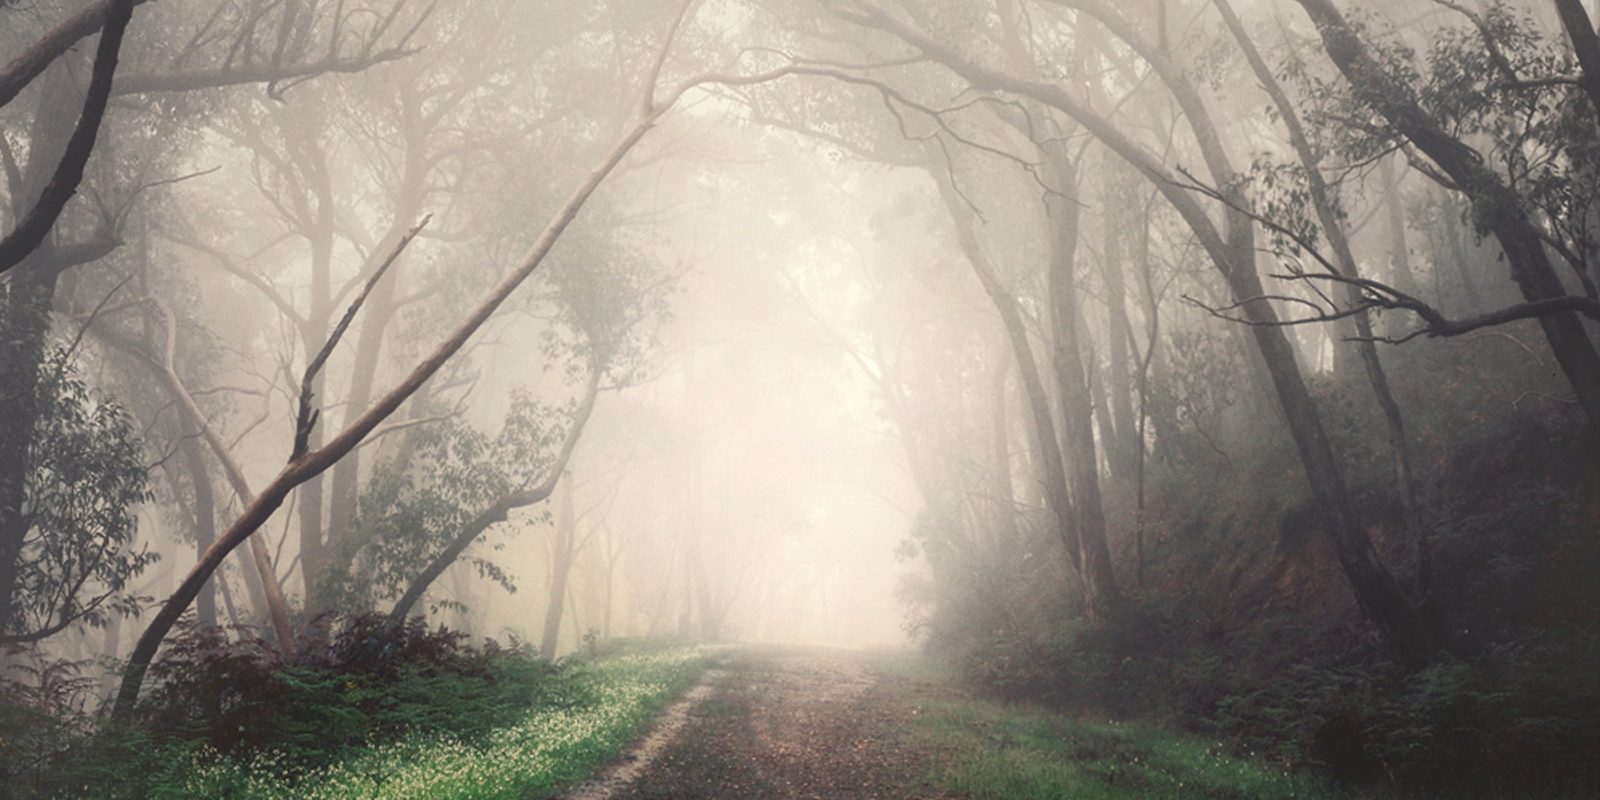 A Road through leafless trees covered in fog